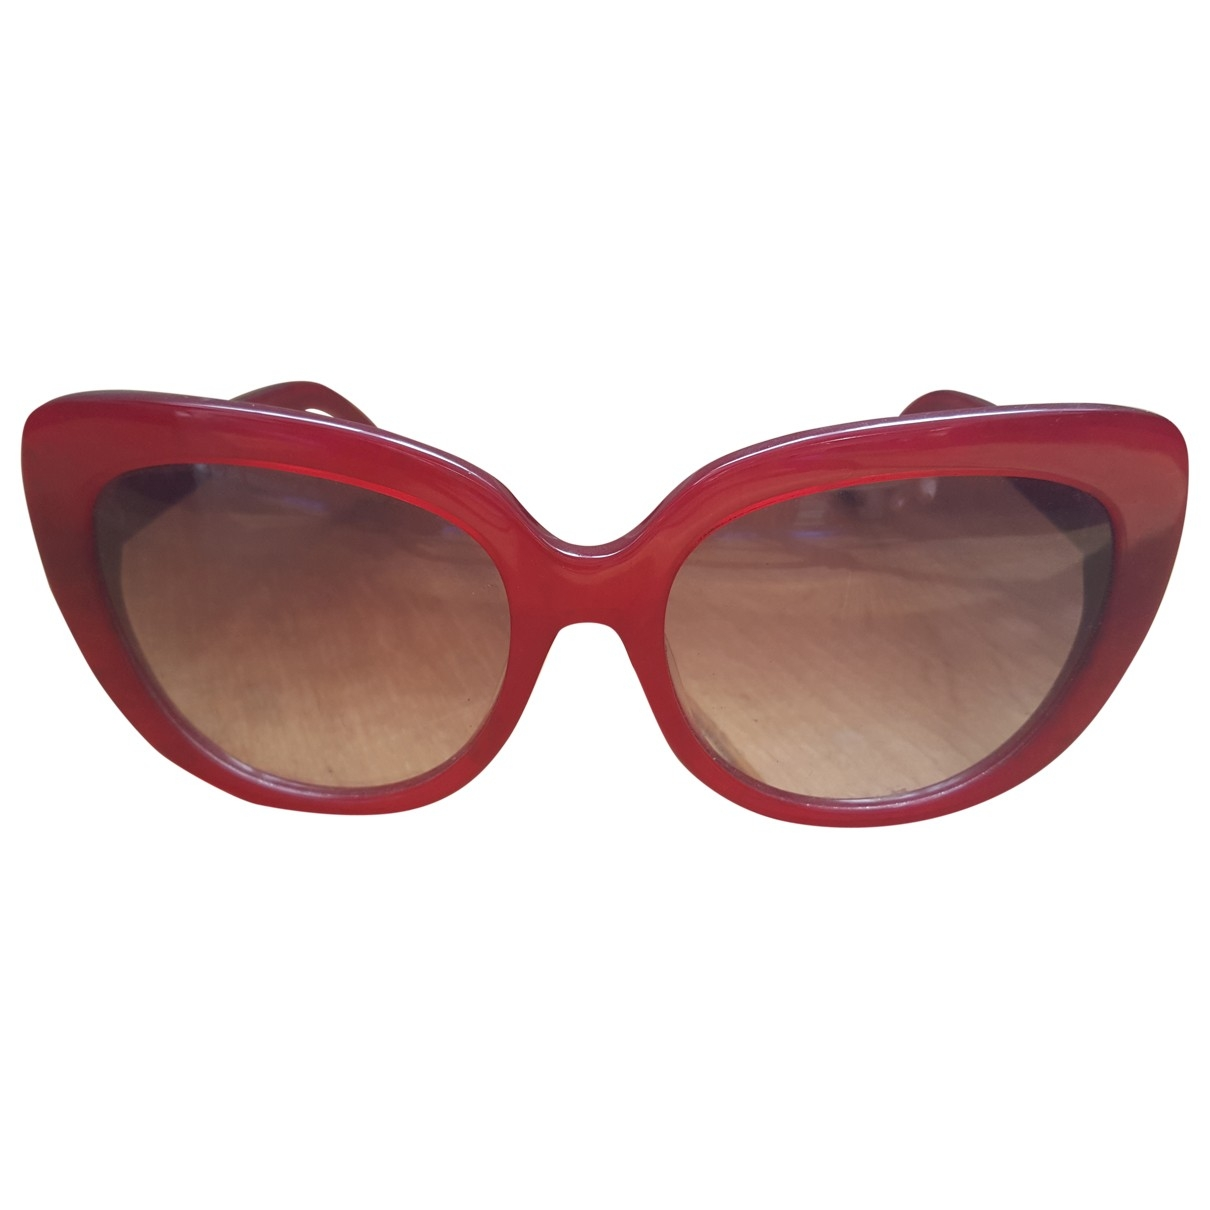 Liu.jo \N Red Sunglasses for Women \N